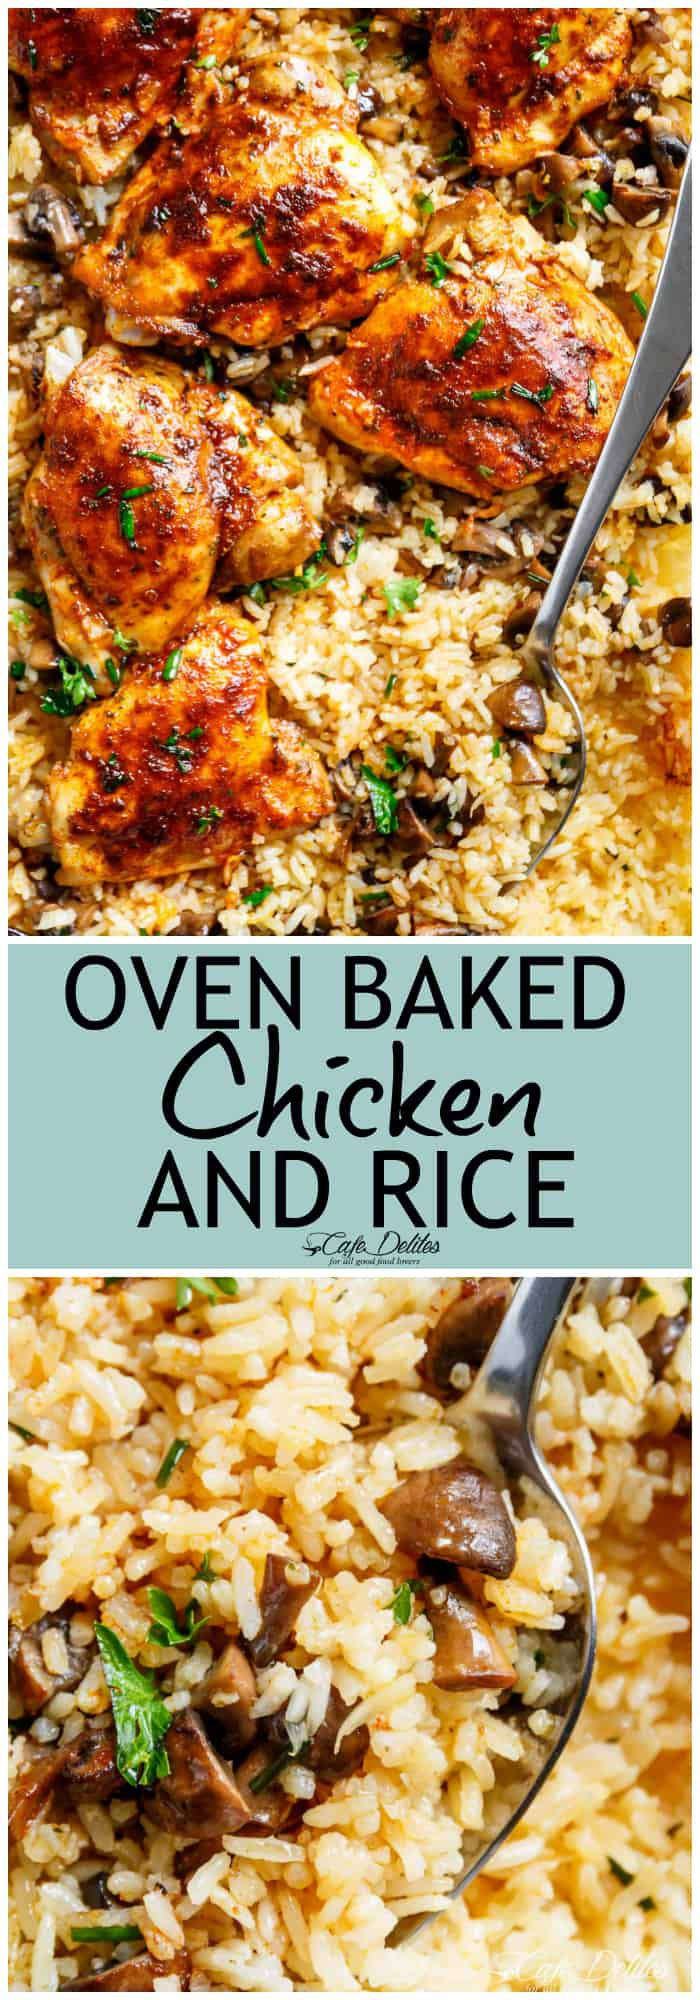 Photo of Oven baked chicken and rice